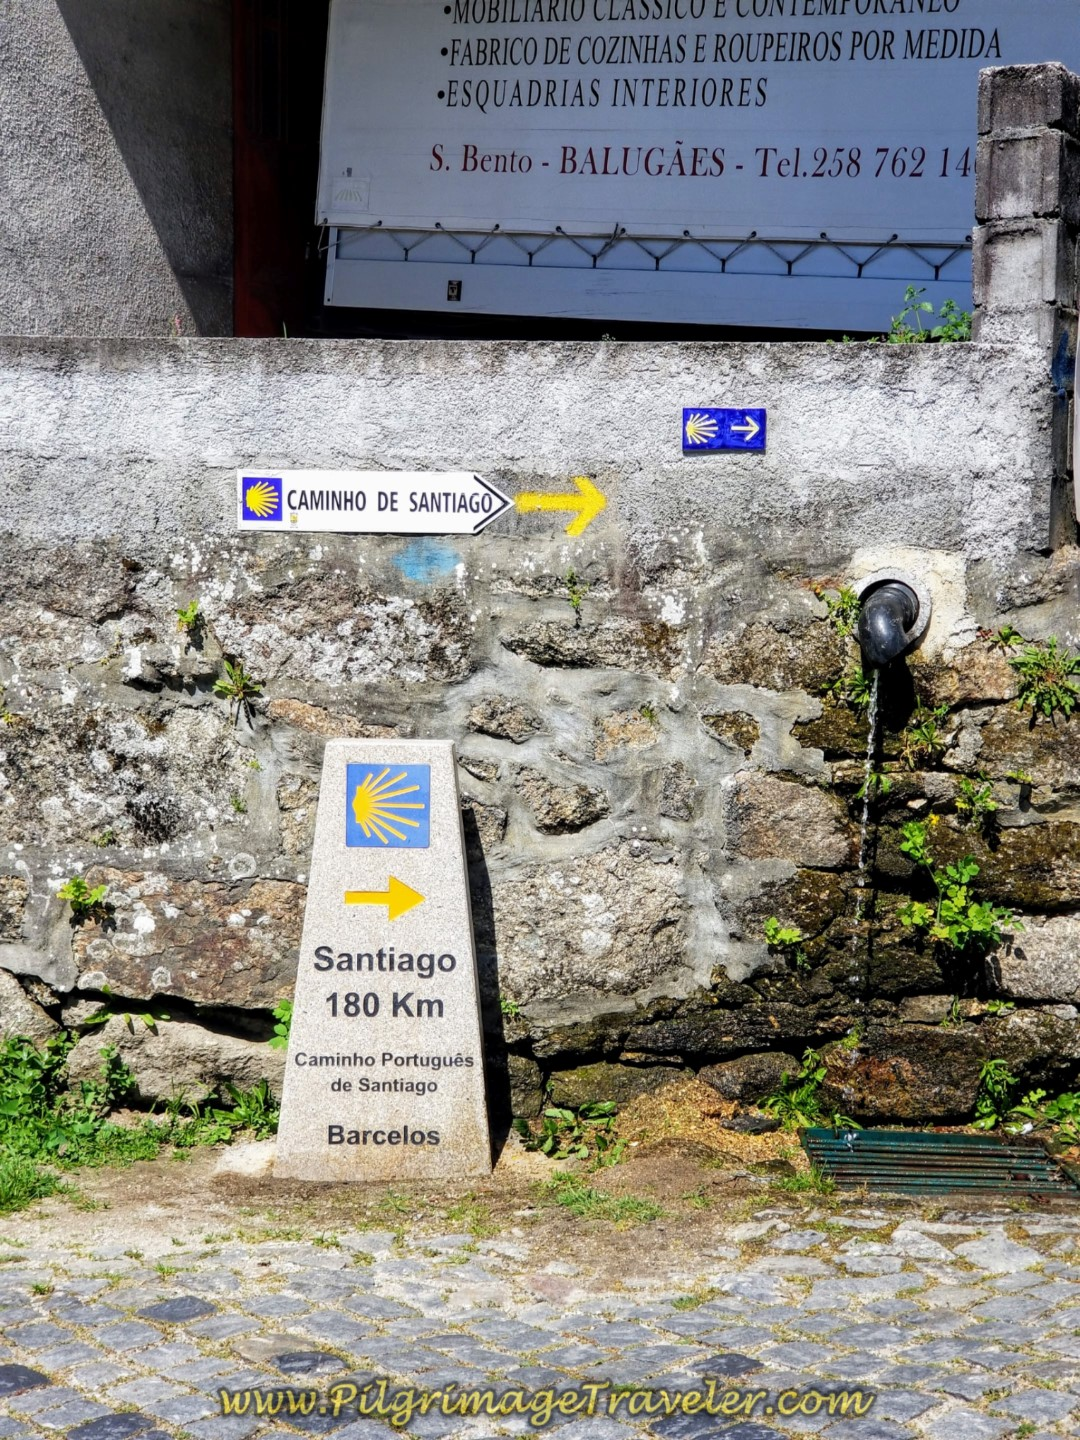 180 Km to Santiago in Balugães on day seventeen on the Central Route of the Portuguese Camino